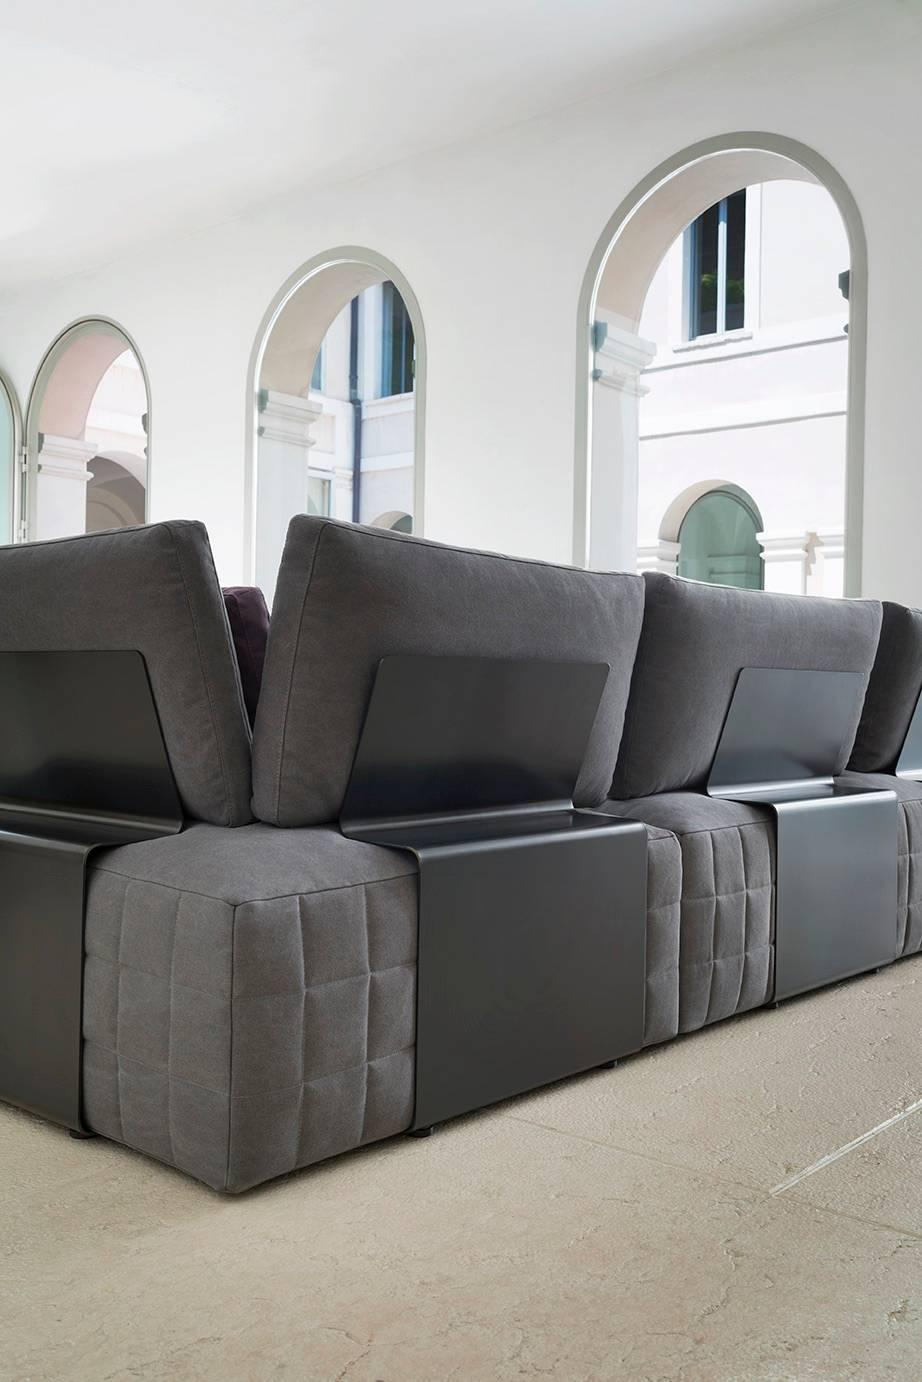 Sectional Bed Sofa Italian Modular Sectional Sofa Modern Design Made In Italy